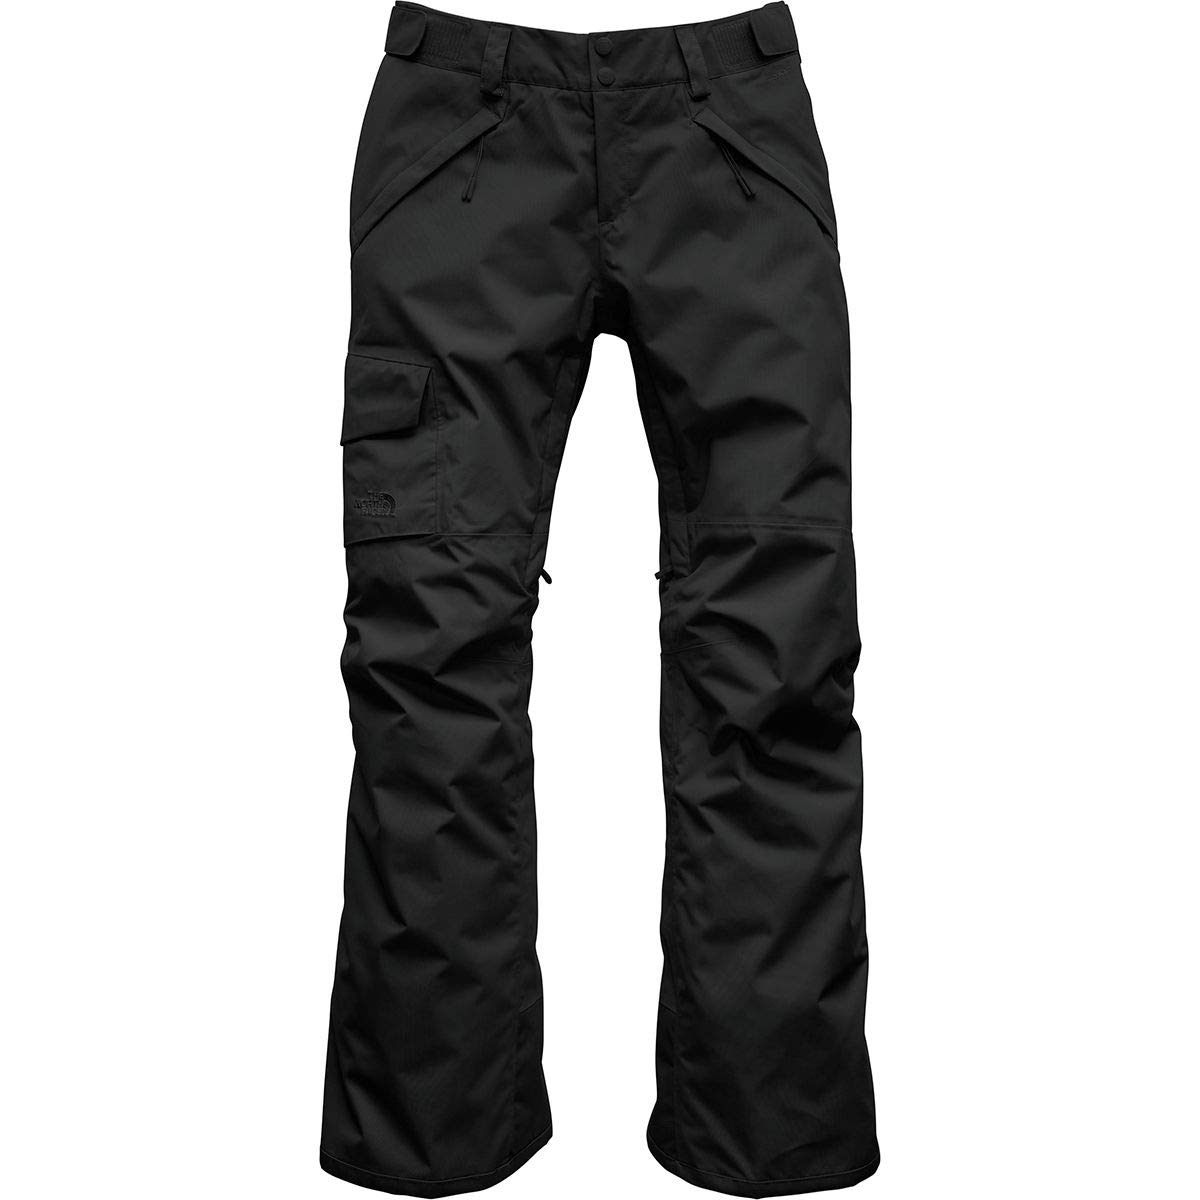 Amazon.com  The North Face Freedom Insulated Pant - Women s - TNF Black   Clothing 13ca1447d